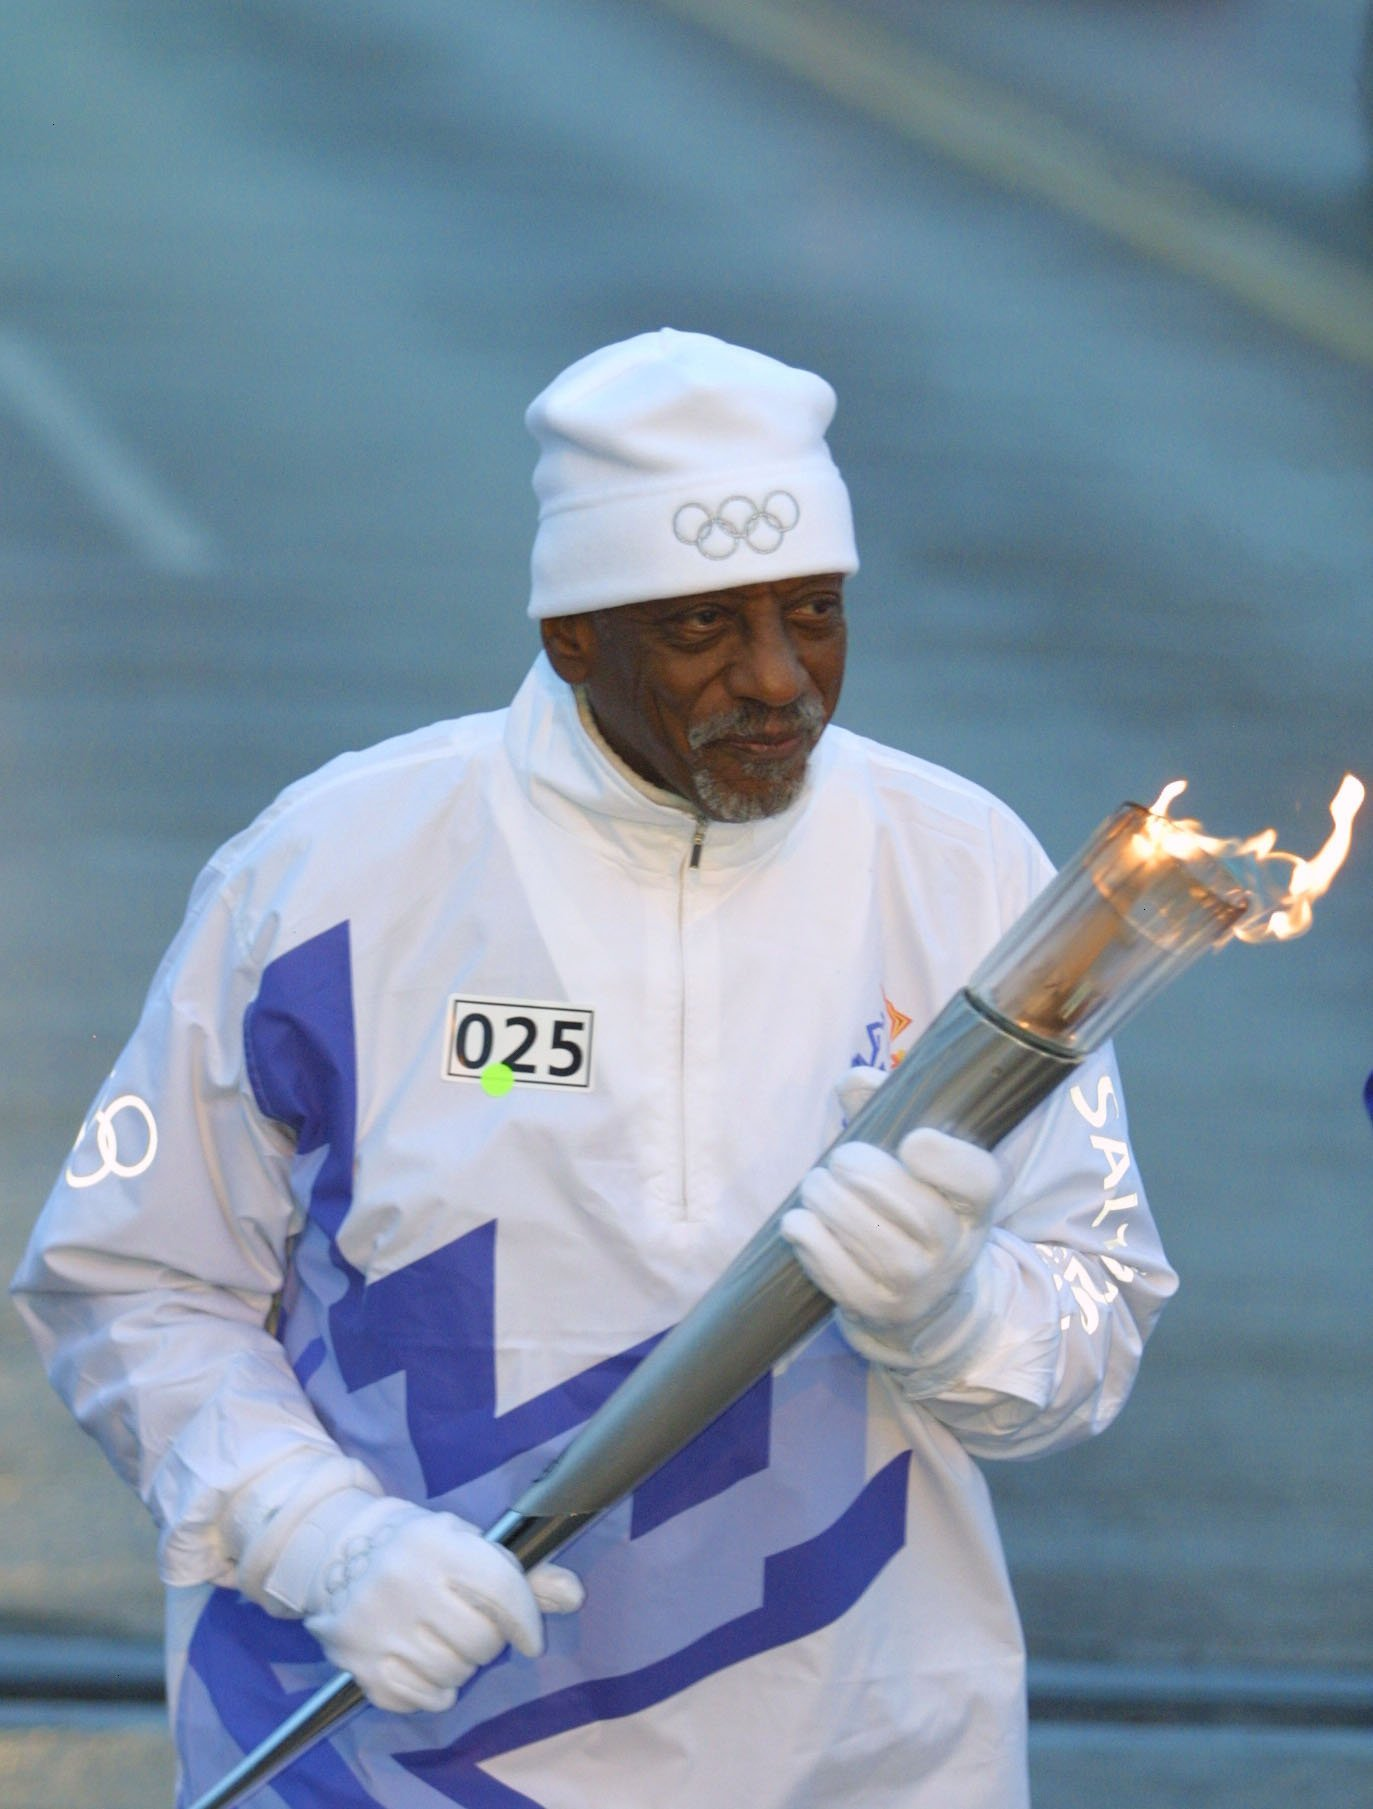 Harrison Dillard, an Olympic hurdler in the 1948 and 1952 Olympics, carries the Olympic Flame during the 2002 Salt Lake Olympic Torch Relay in Cleveland, Ohio | Photo: Getty Images